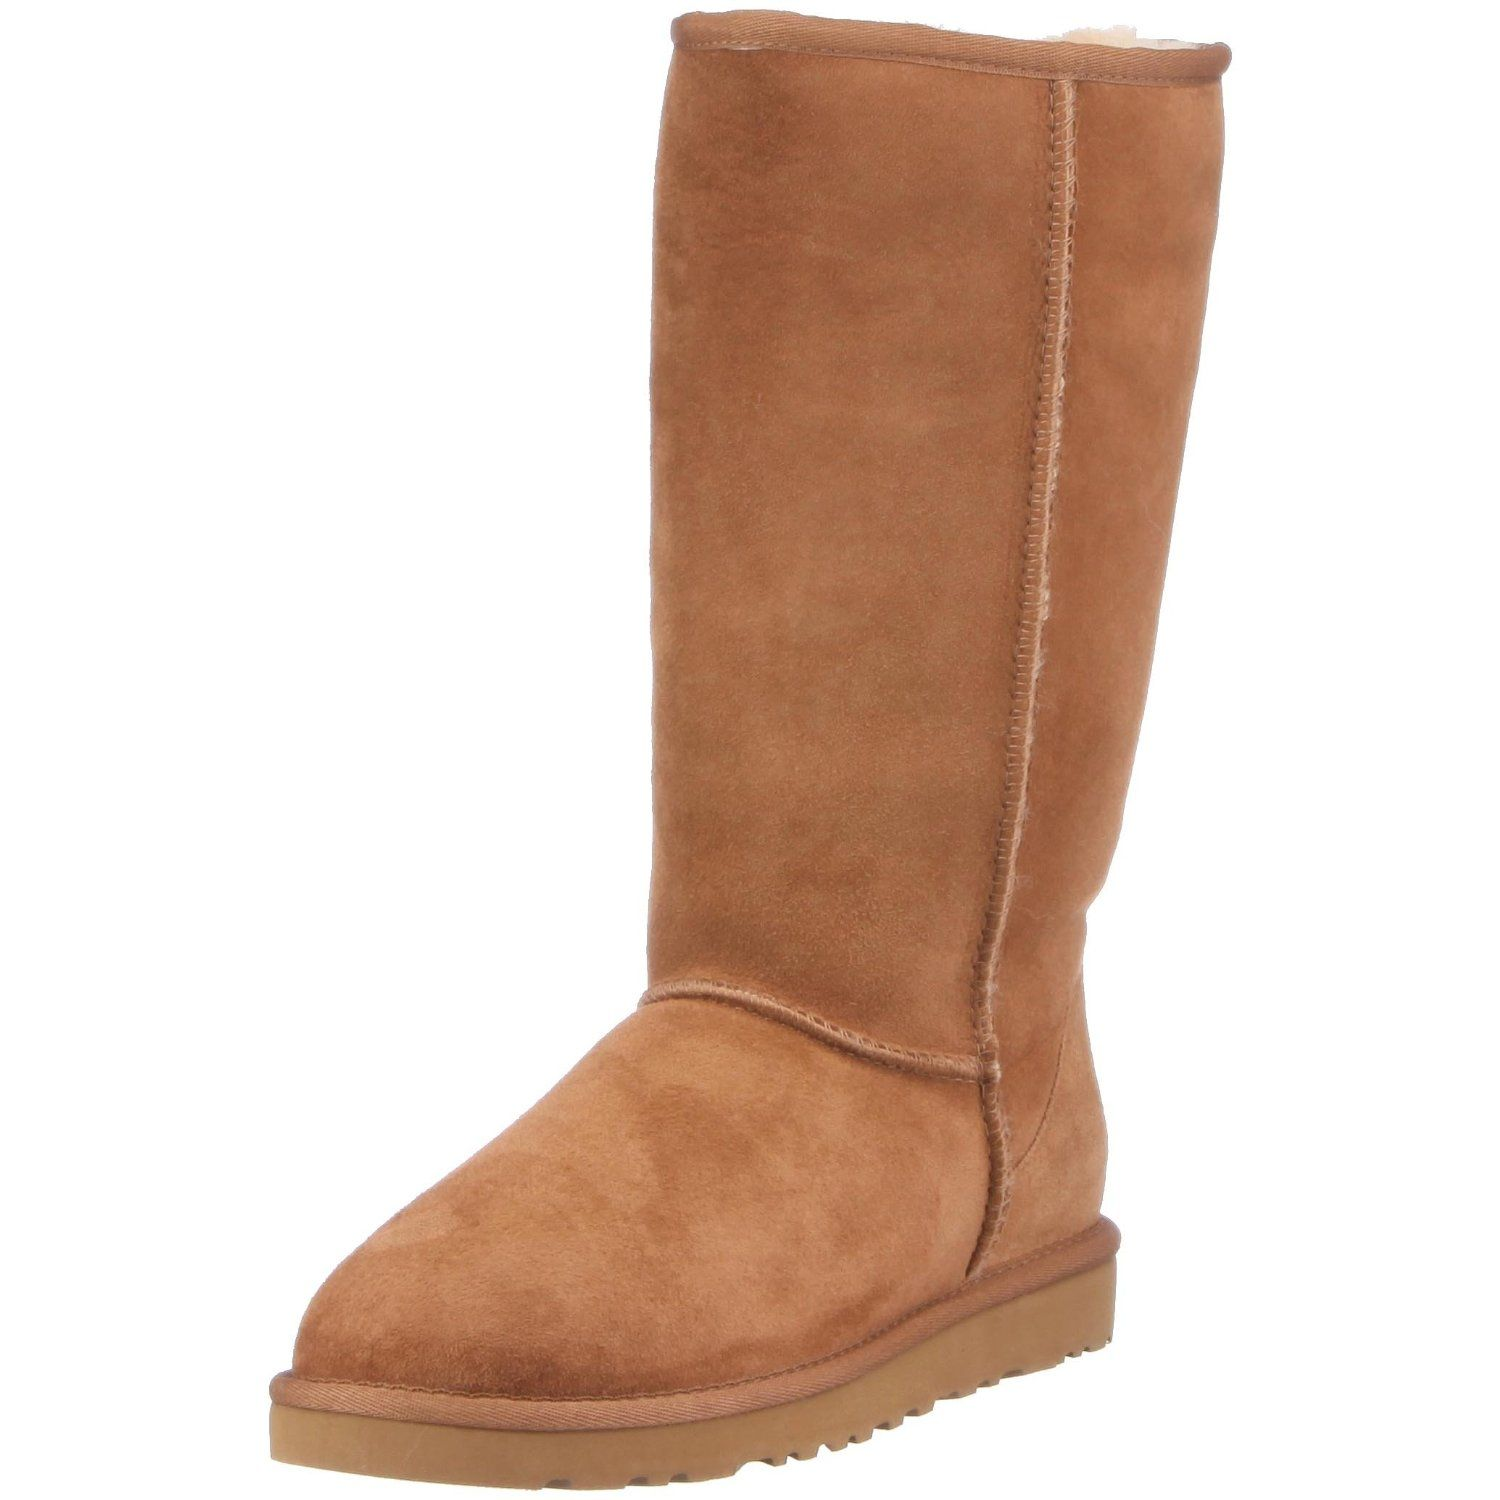 Uggs Boots for Women | Black Friday Ugg Shoes On Sale UGG Australia Women's Classic TallBoots